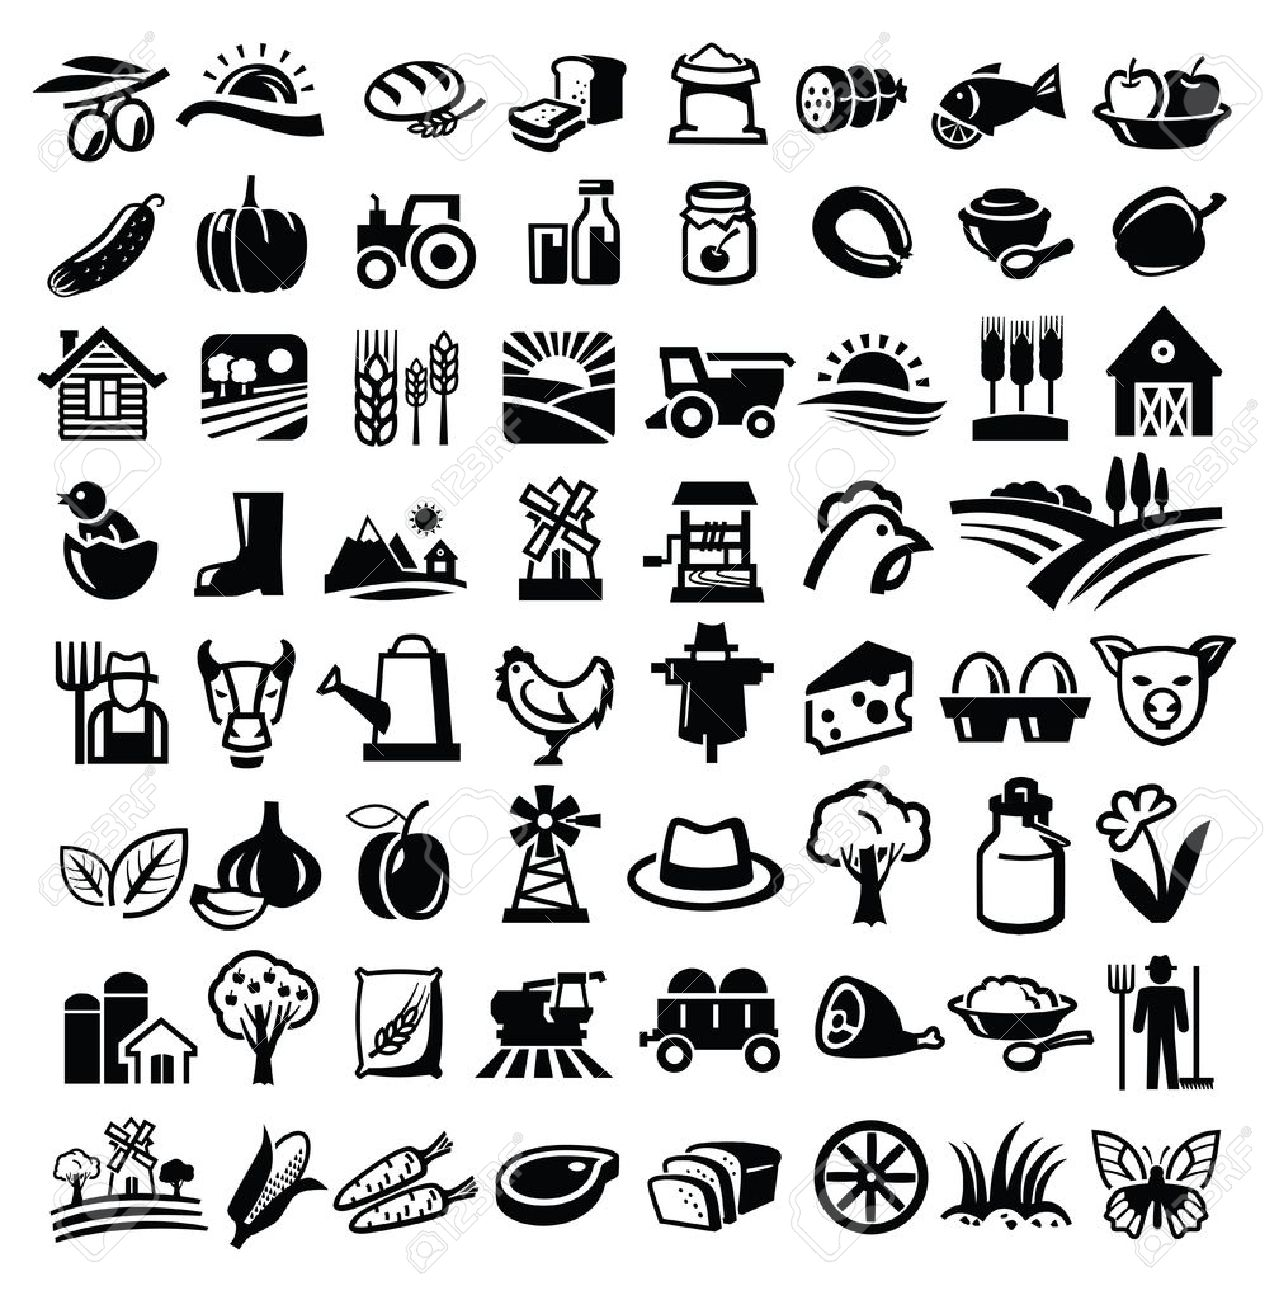 Farm icon free icons. Agriculture clipart vector